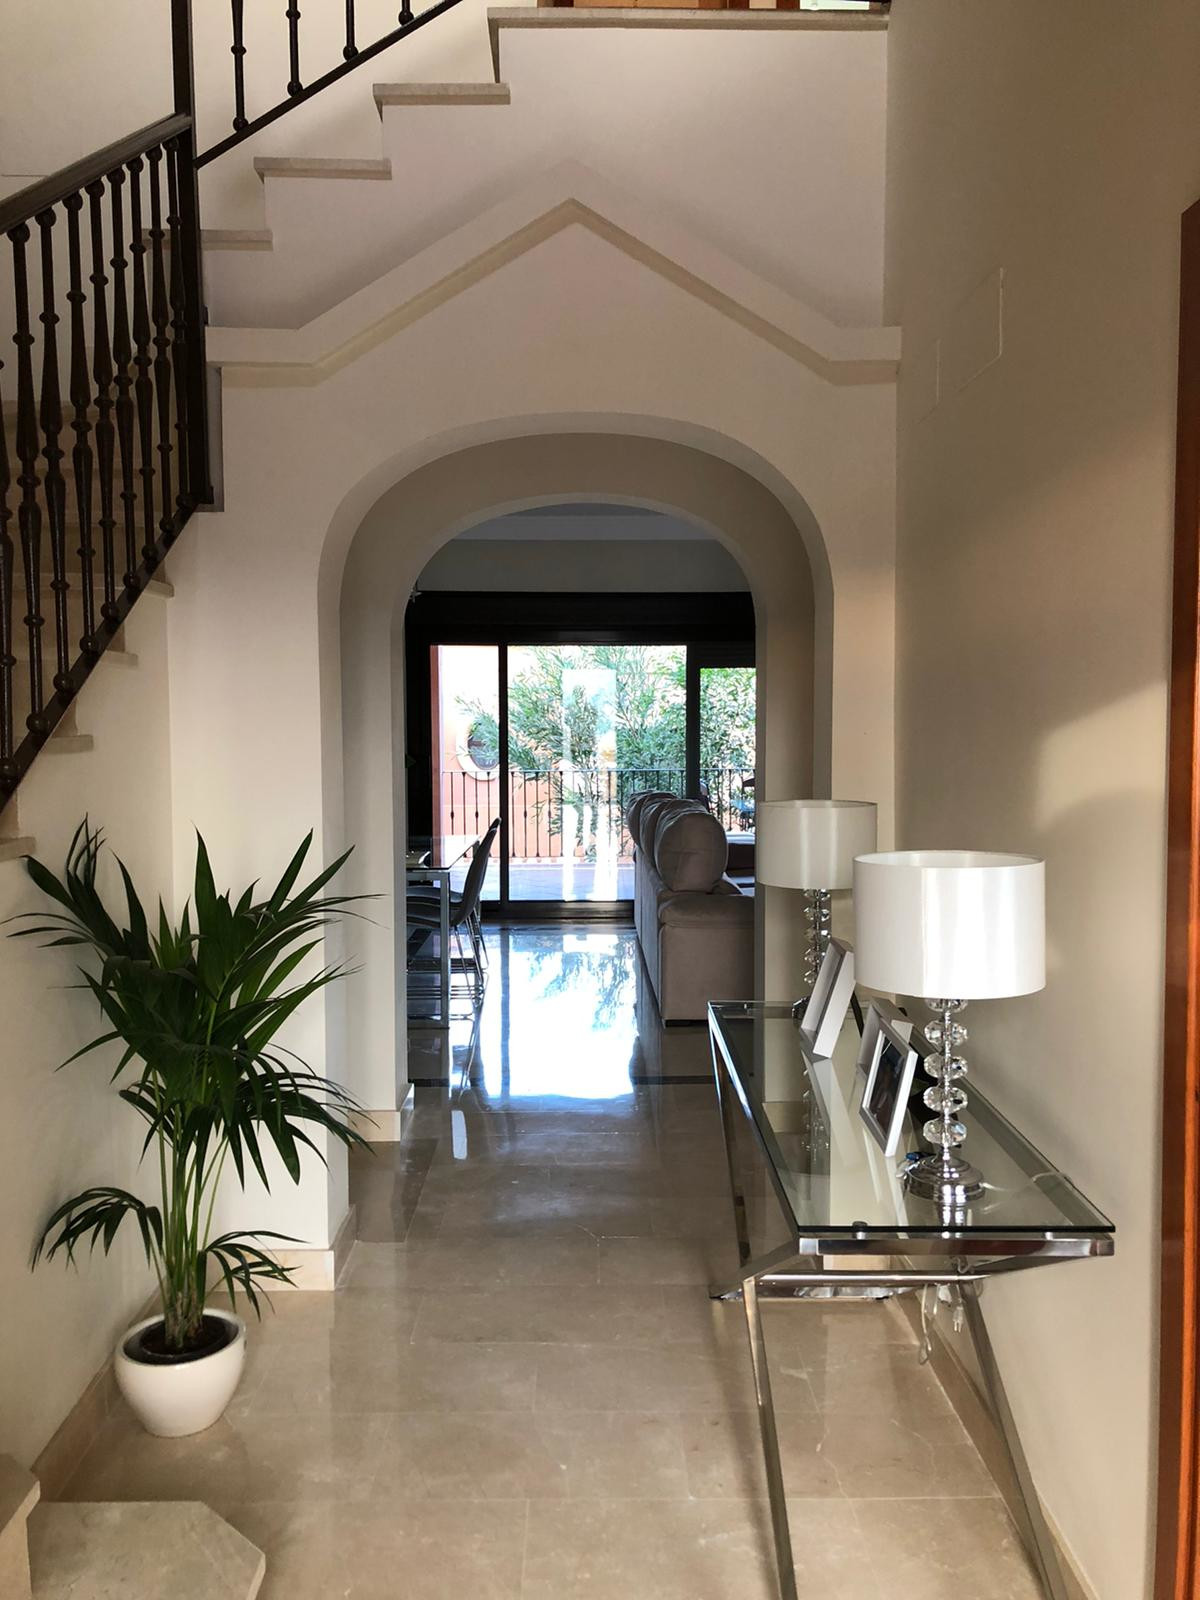 3 Bedroom Terraced Townhouse For Sale Estepona